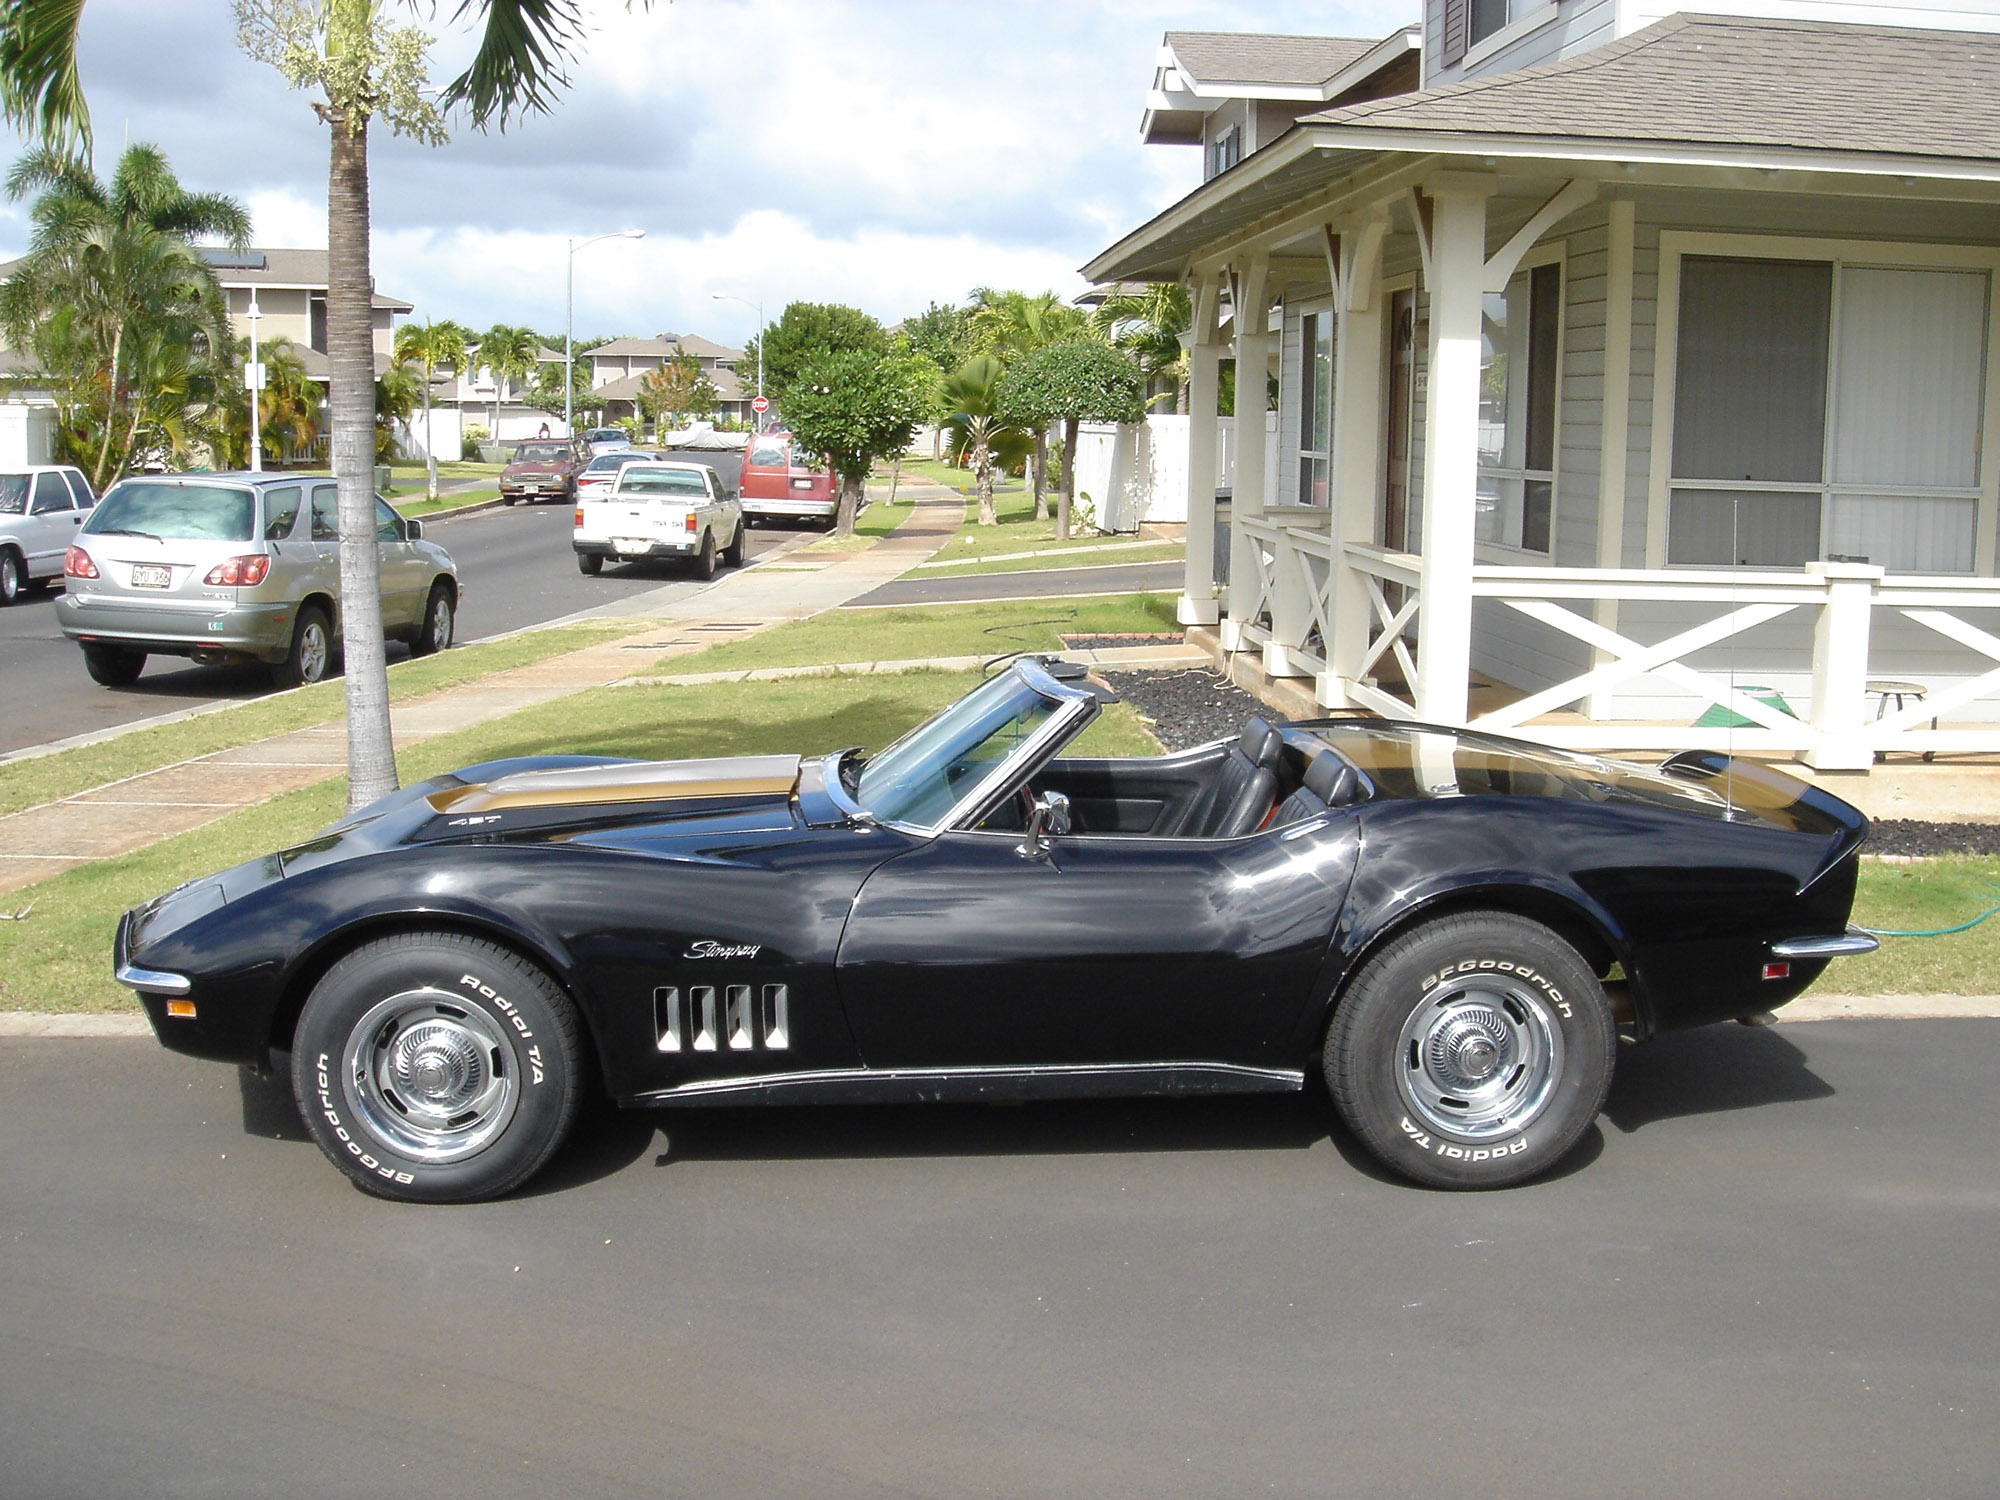 chevrolet corvette c3 photos photogallery with 11 pics. Black Bedroom Furniture Sets. Home Design Ideas